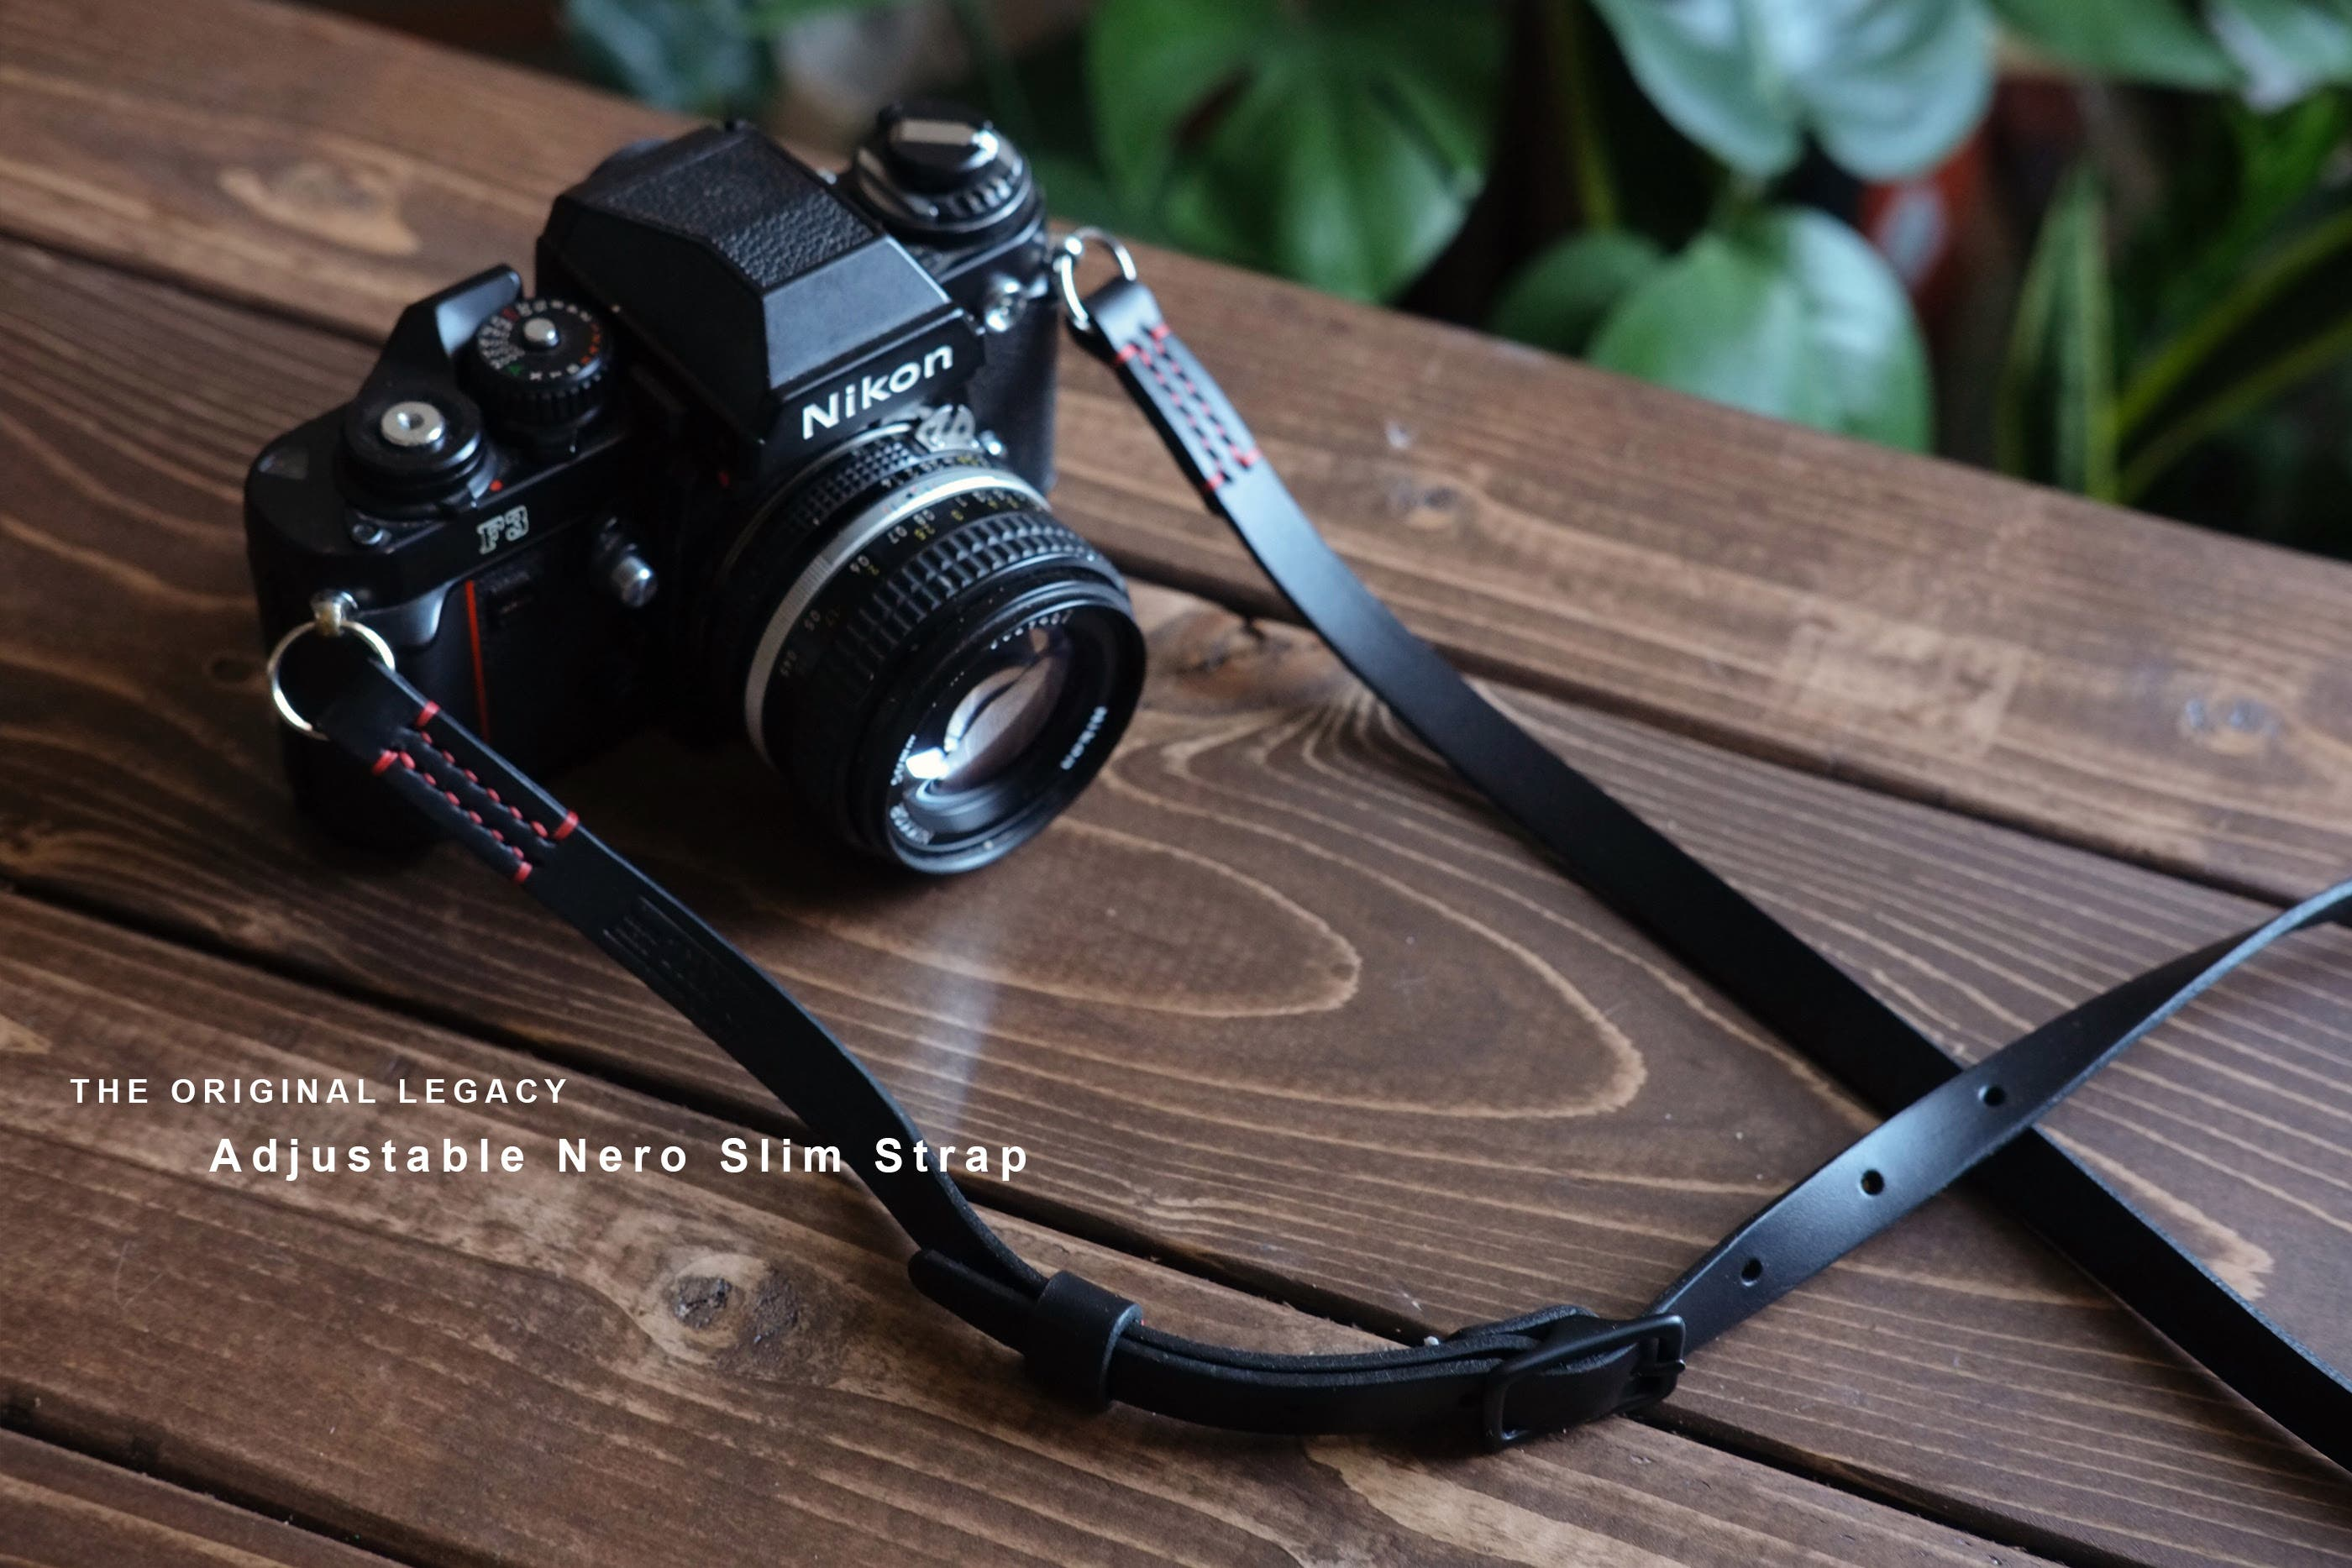 Tap and Dye Add a New Camera Bag, Three Straps to Their Legacy Line